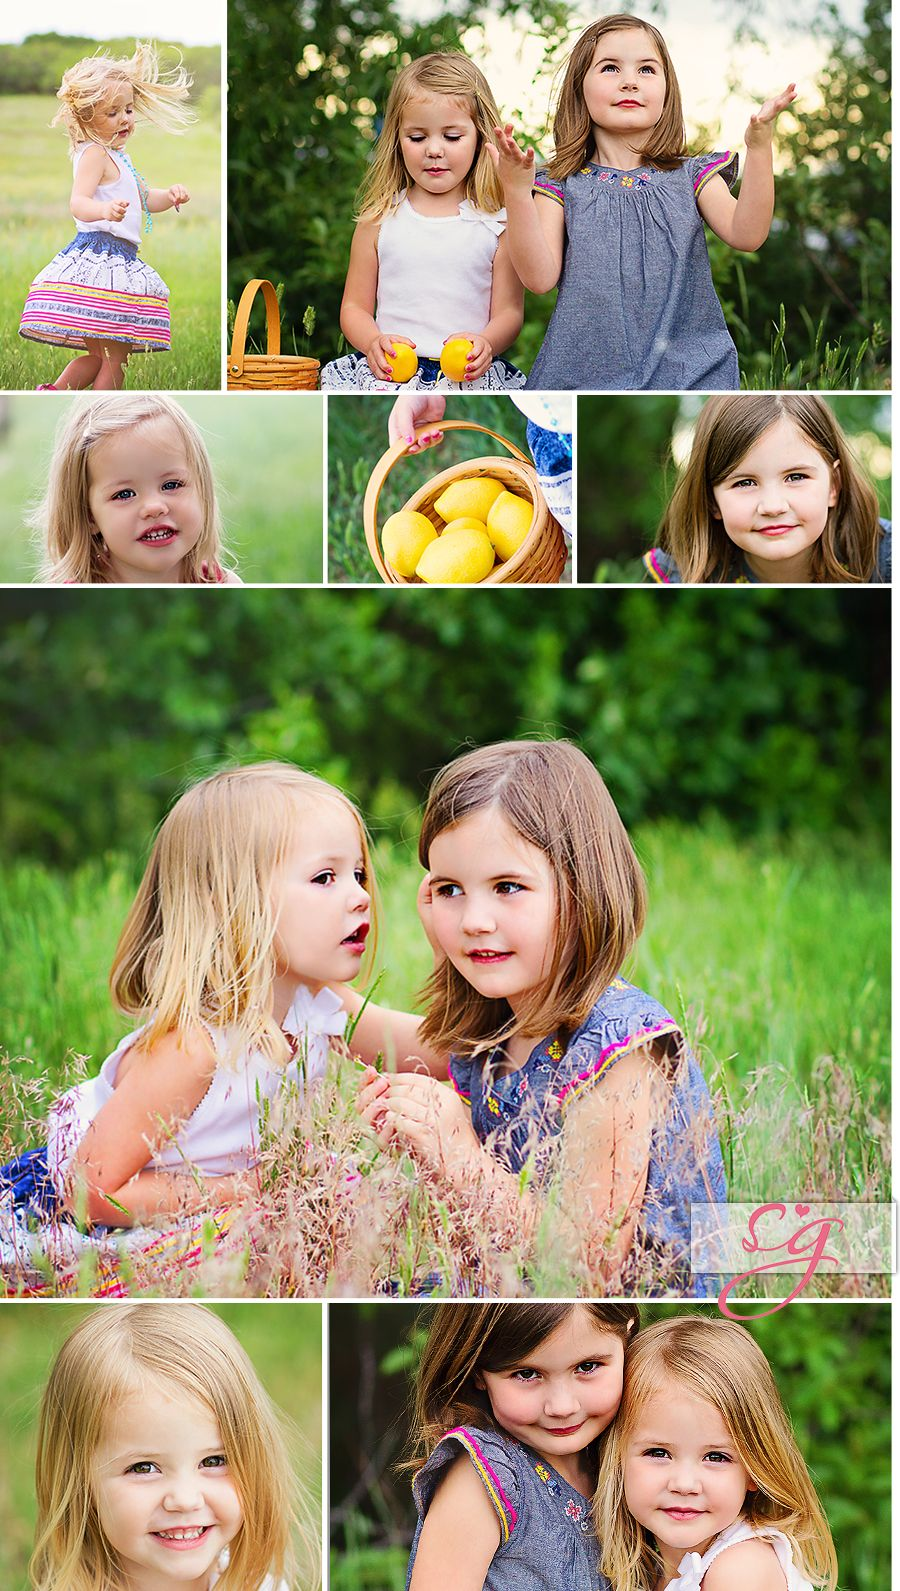 saragarciaphotoart Pictures of siblings! Love the colors and the ...